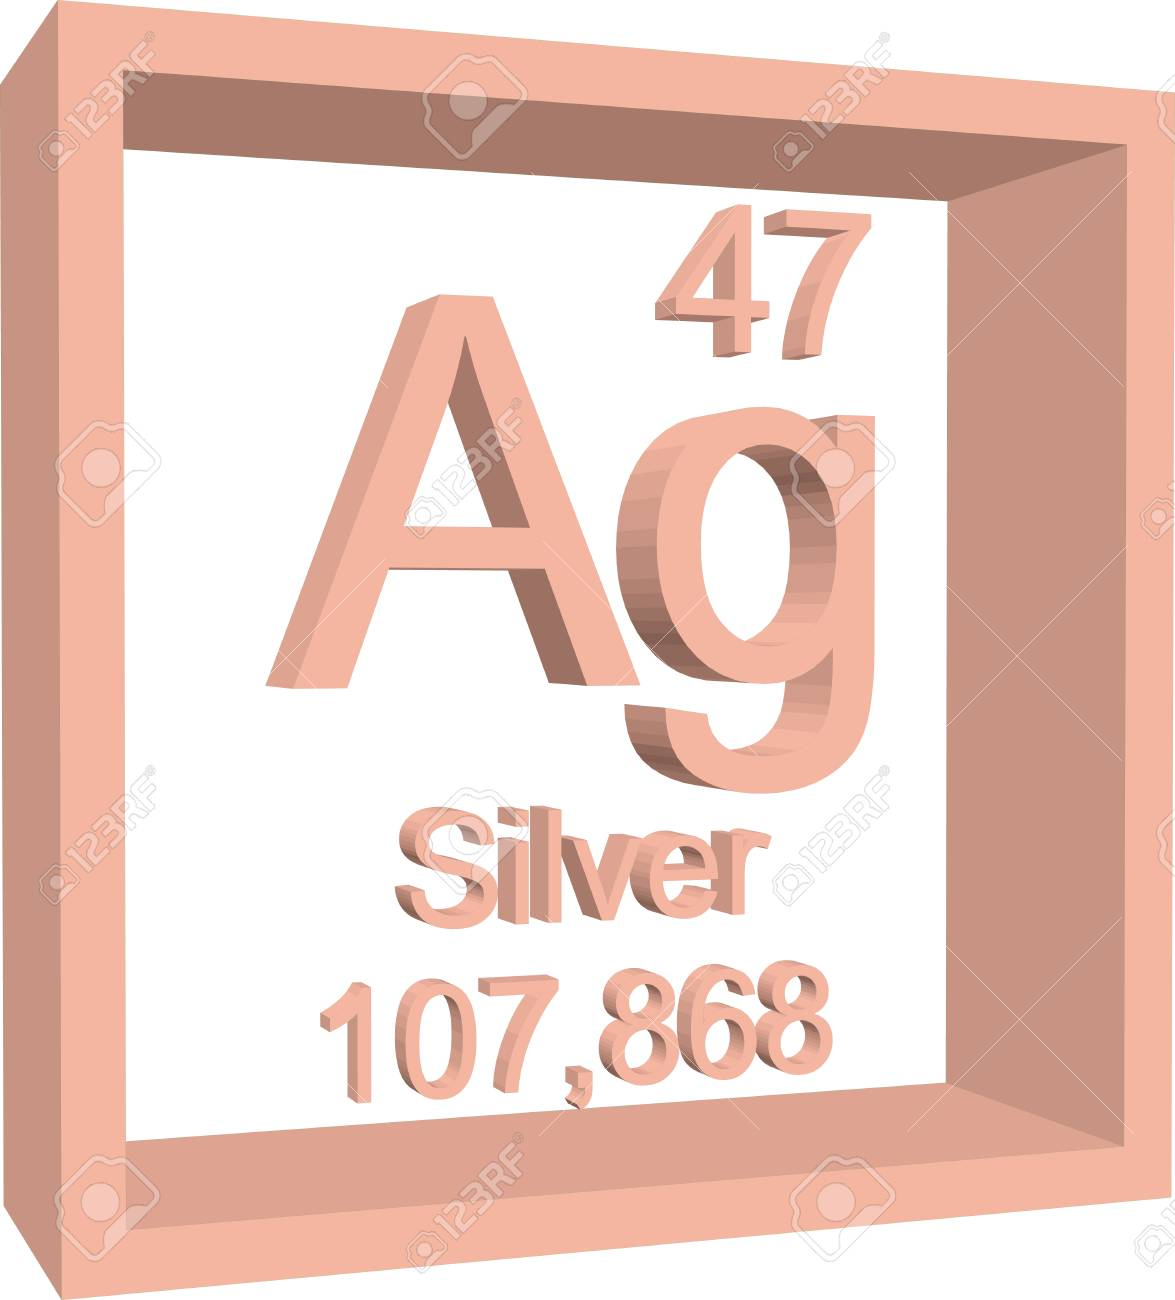 Periodic table of elements silver royalty free cliparts vectors periodic table of elements silver stock vector 57967517 urtaz Image collections